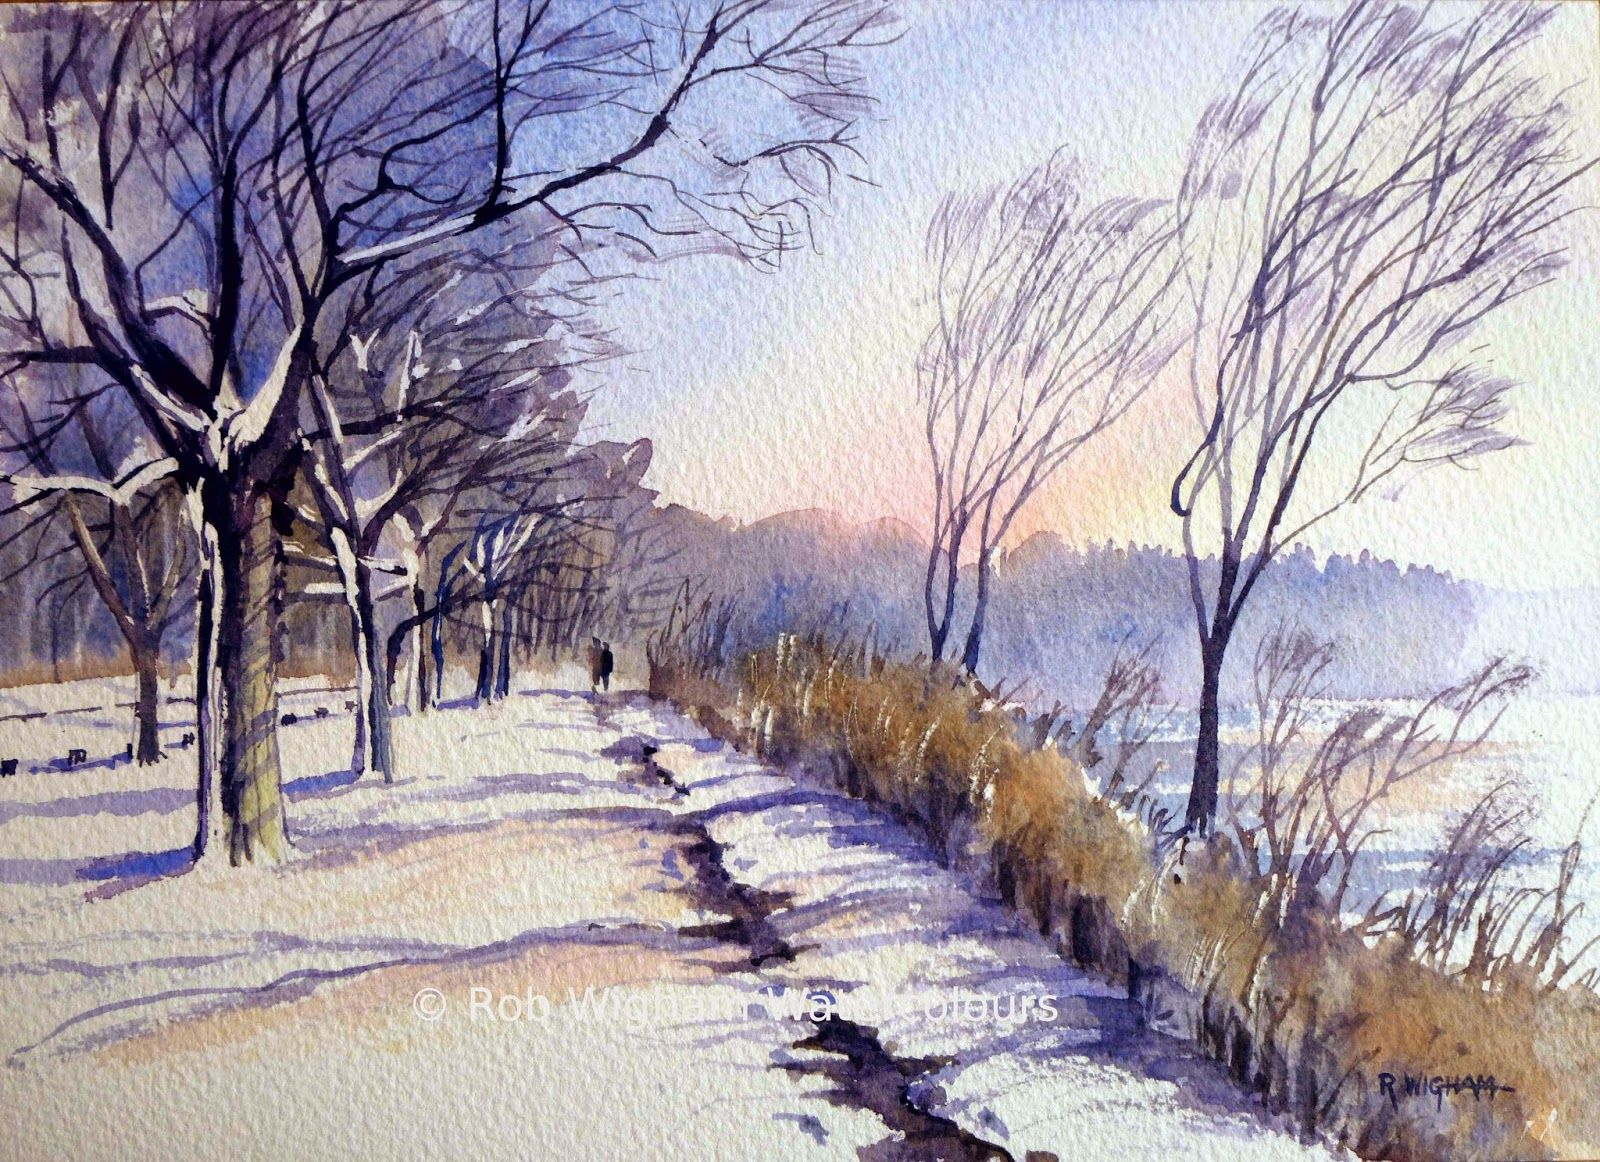 Another Gorgeous Work By Rob Wigham Watercolours Who Cares If